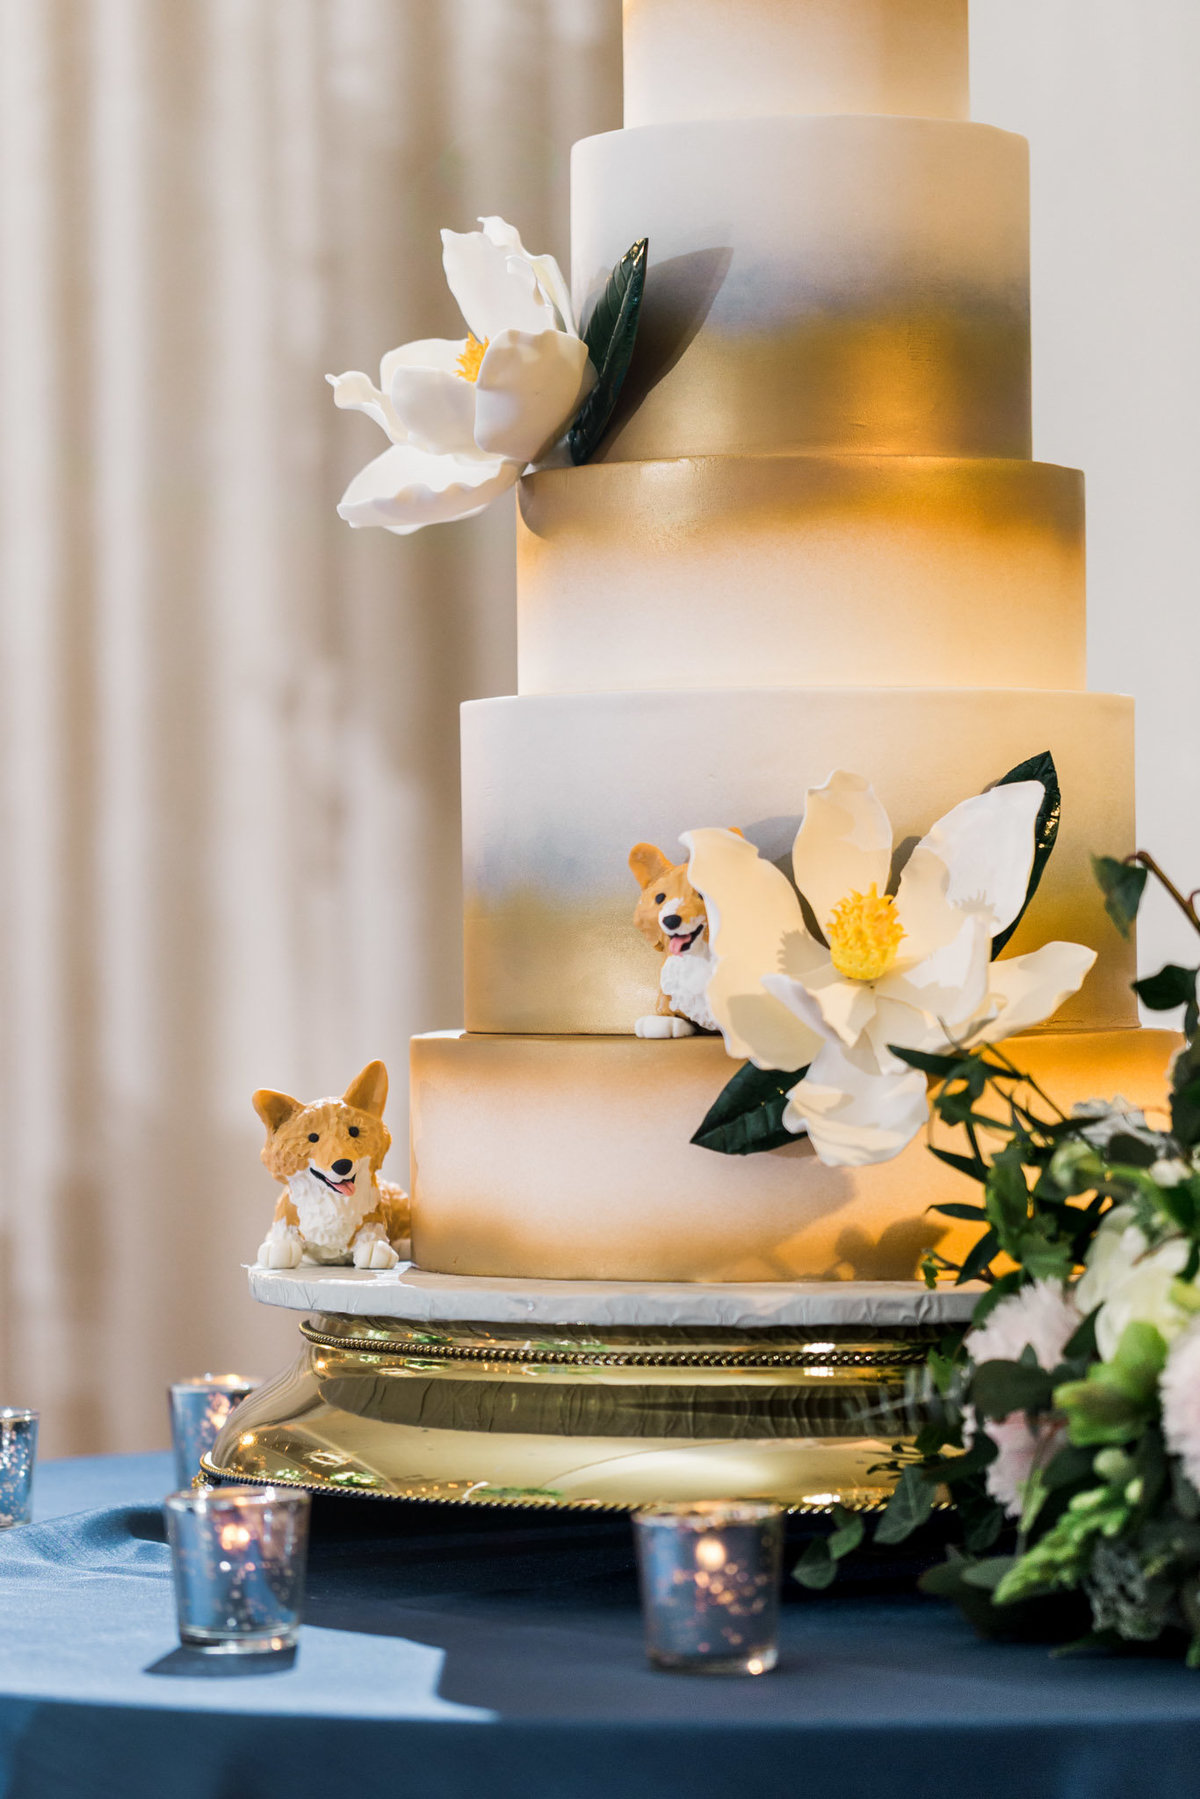 This bride chose to incorporate her love of Corgis's into her wedding cake. Photo by luxury destination wedding photographer Rebecca Cerasani.